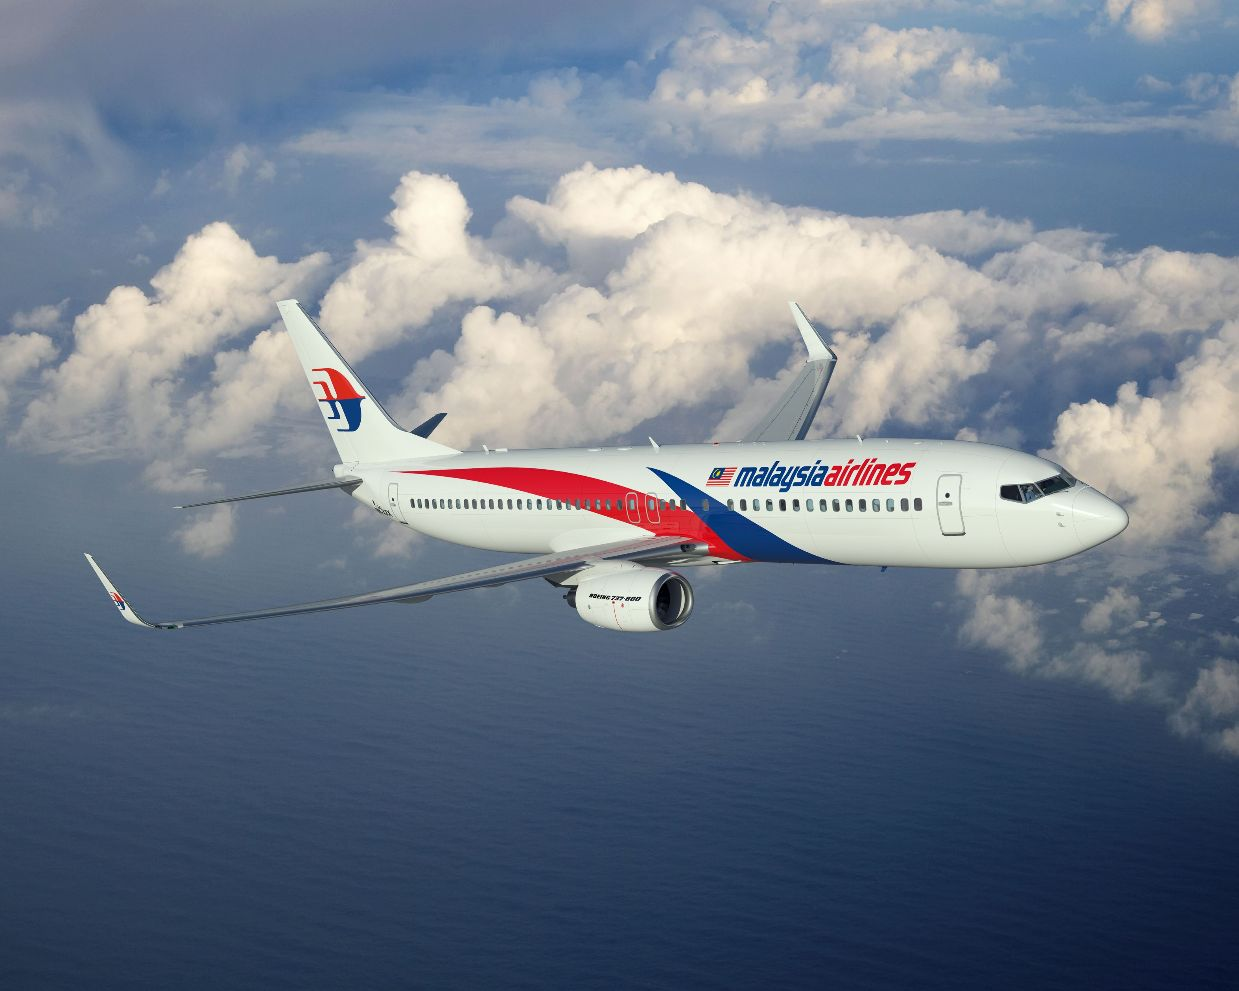 Malaysia Airlines extends support contract with AFI KLM E&M